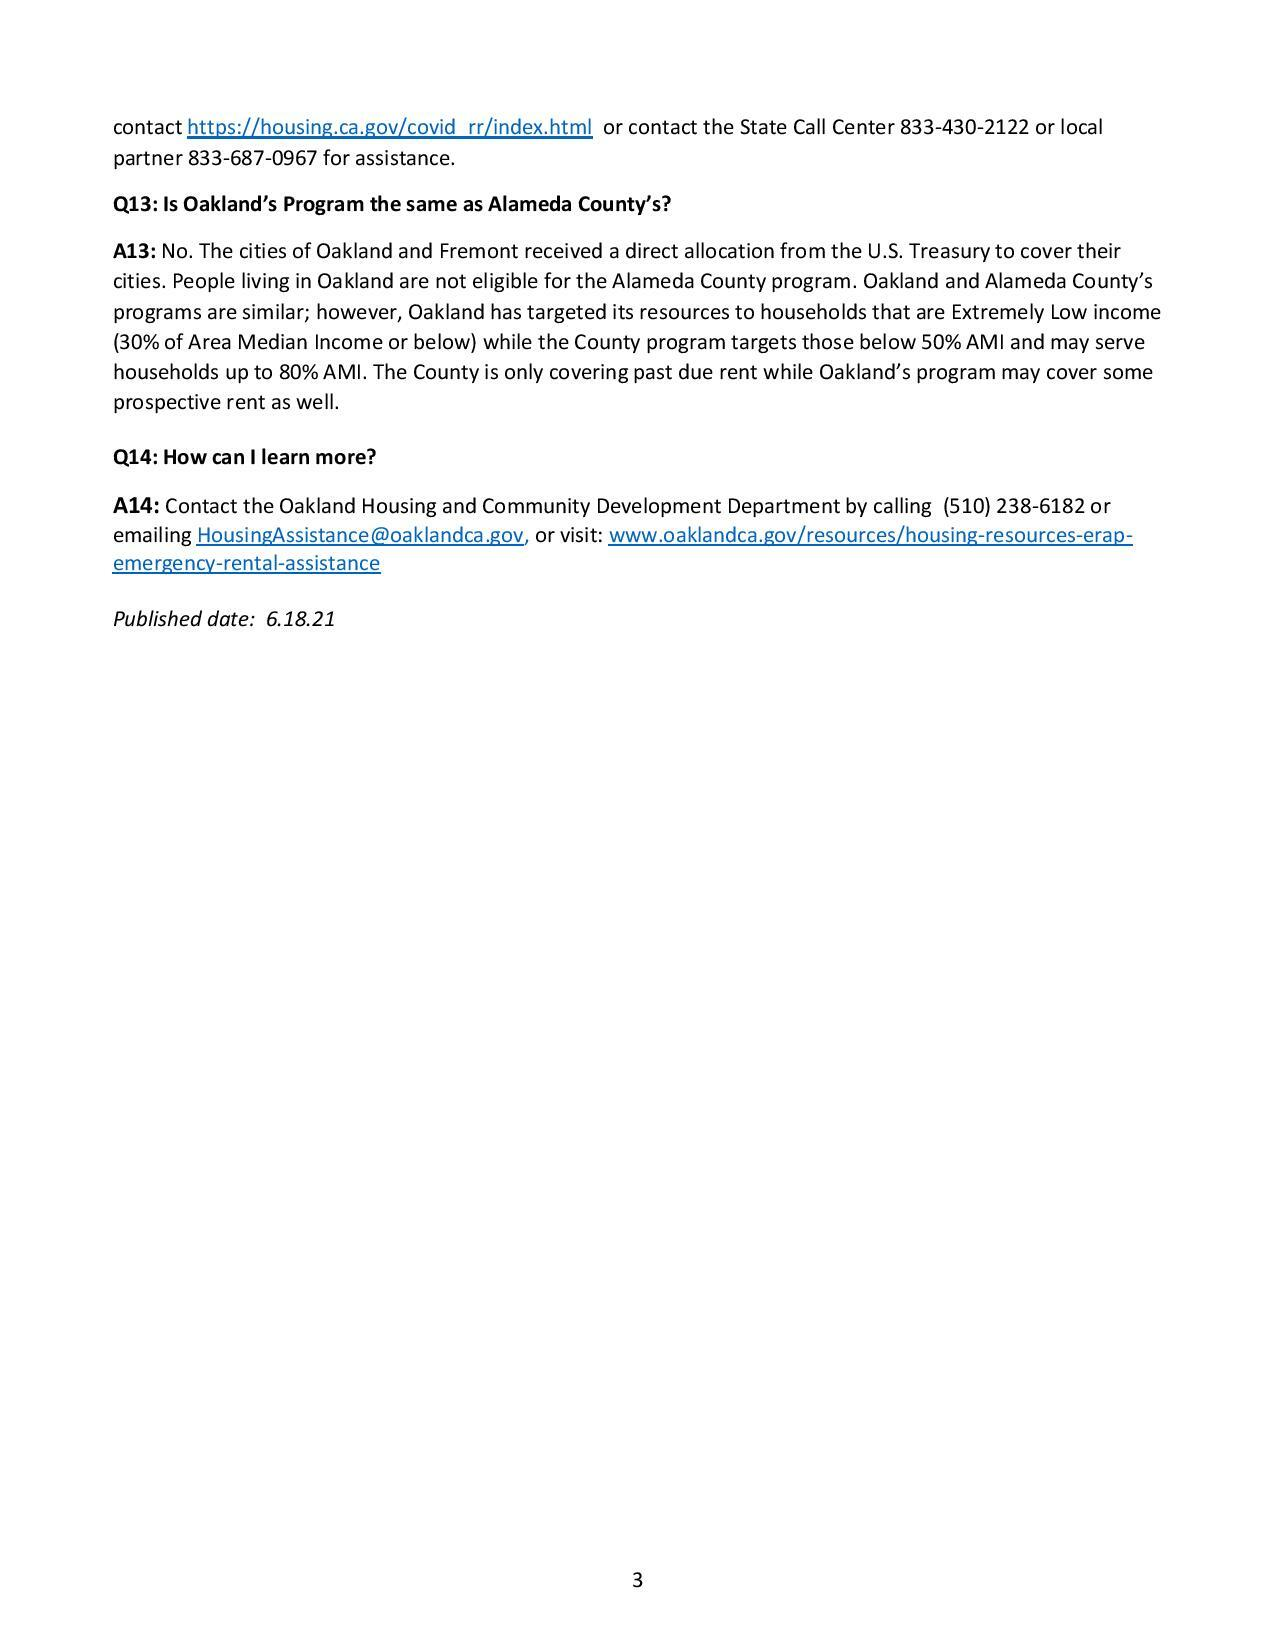 Oakland Renter Relief FAQ page 3 of 3